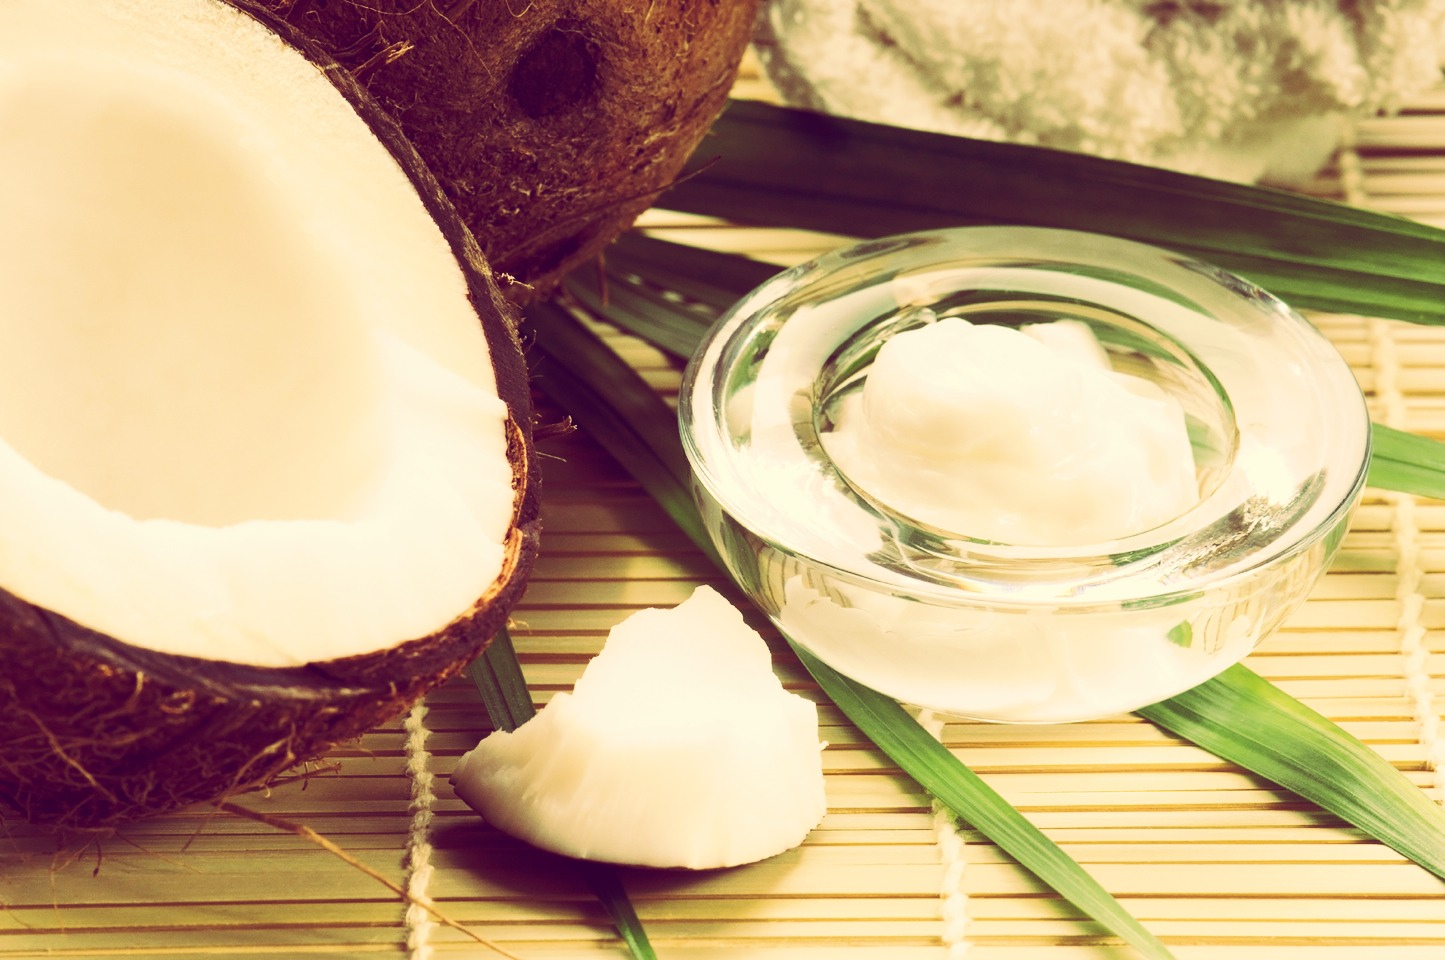 Coconut oil and baking soda are highly efficient for your skin. But before trying out this mask on your face, test it out on your arm first.